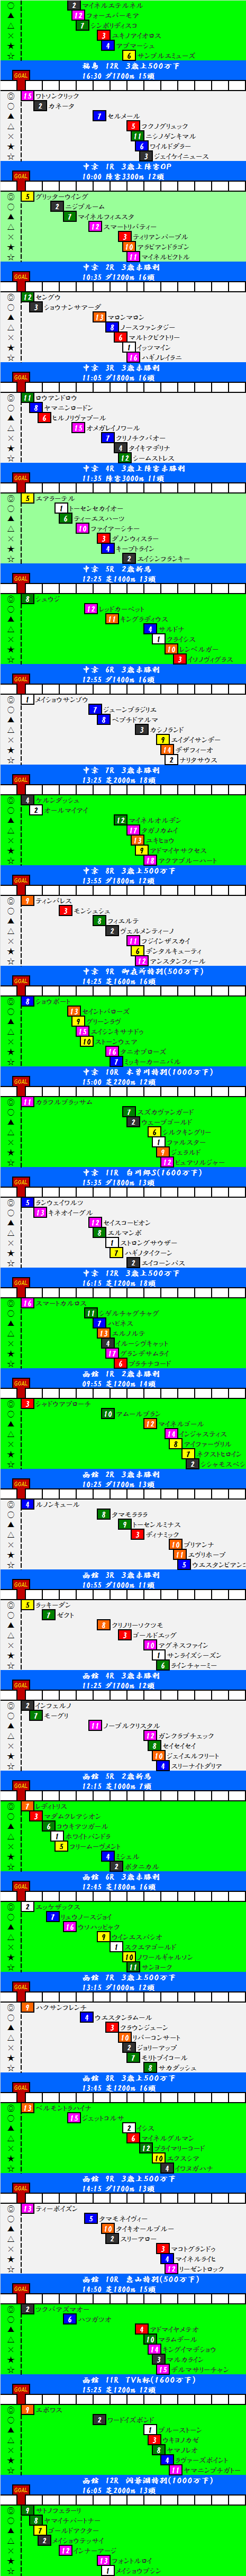 2015070402.png